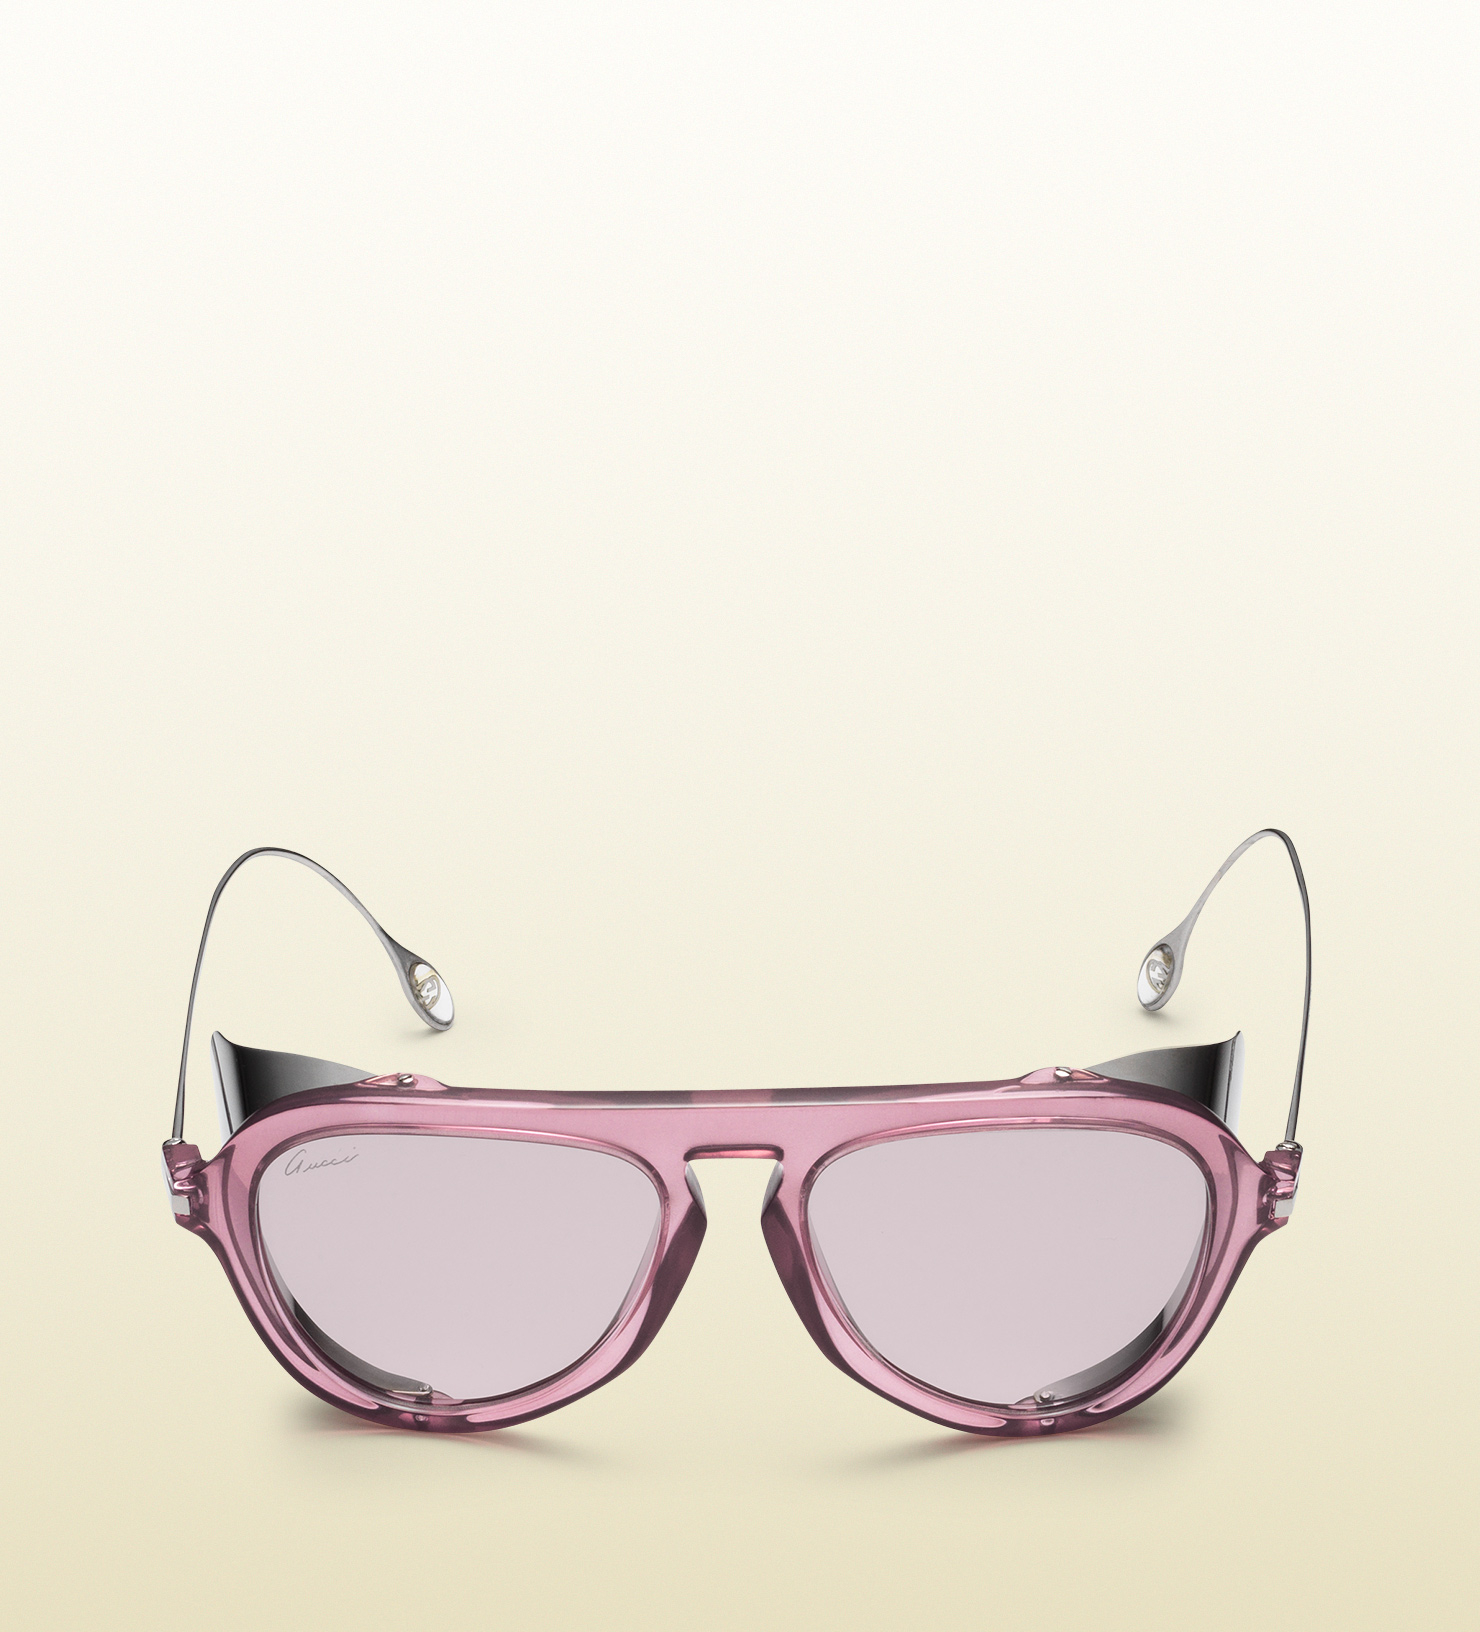 Gucci Optyl Aviator Sunglasses With Metal Blinkers in Pink ...